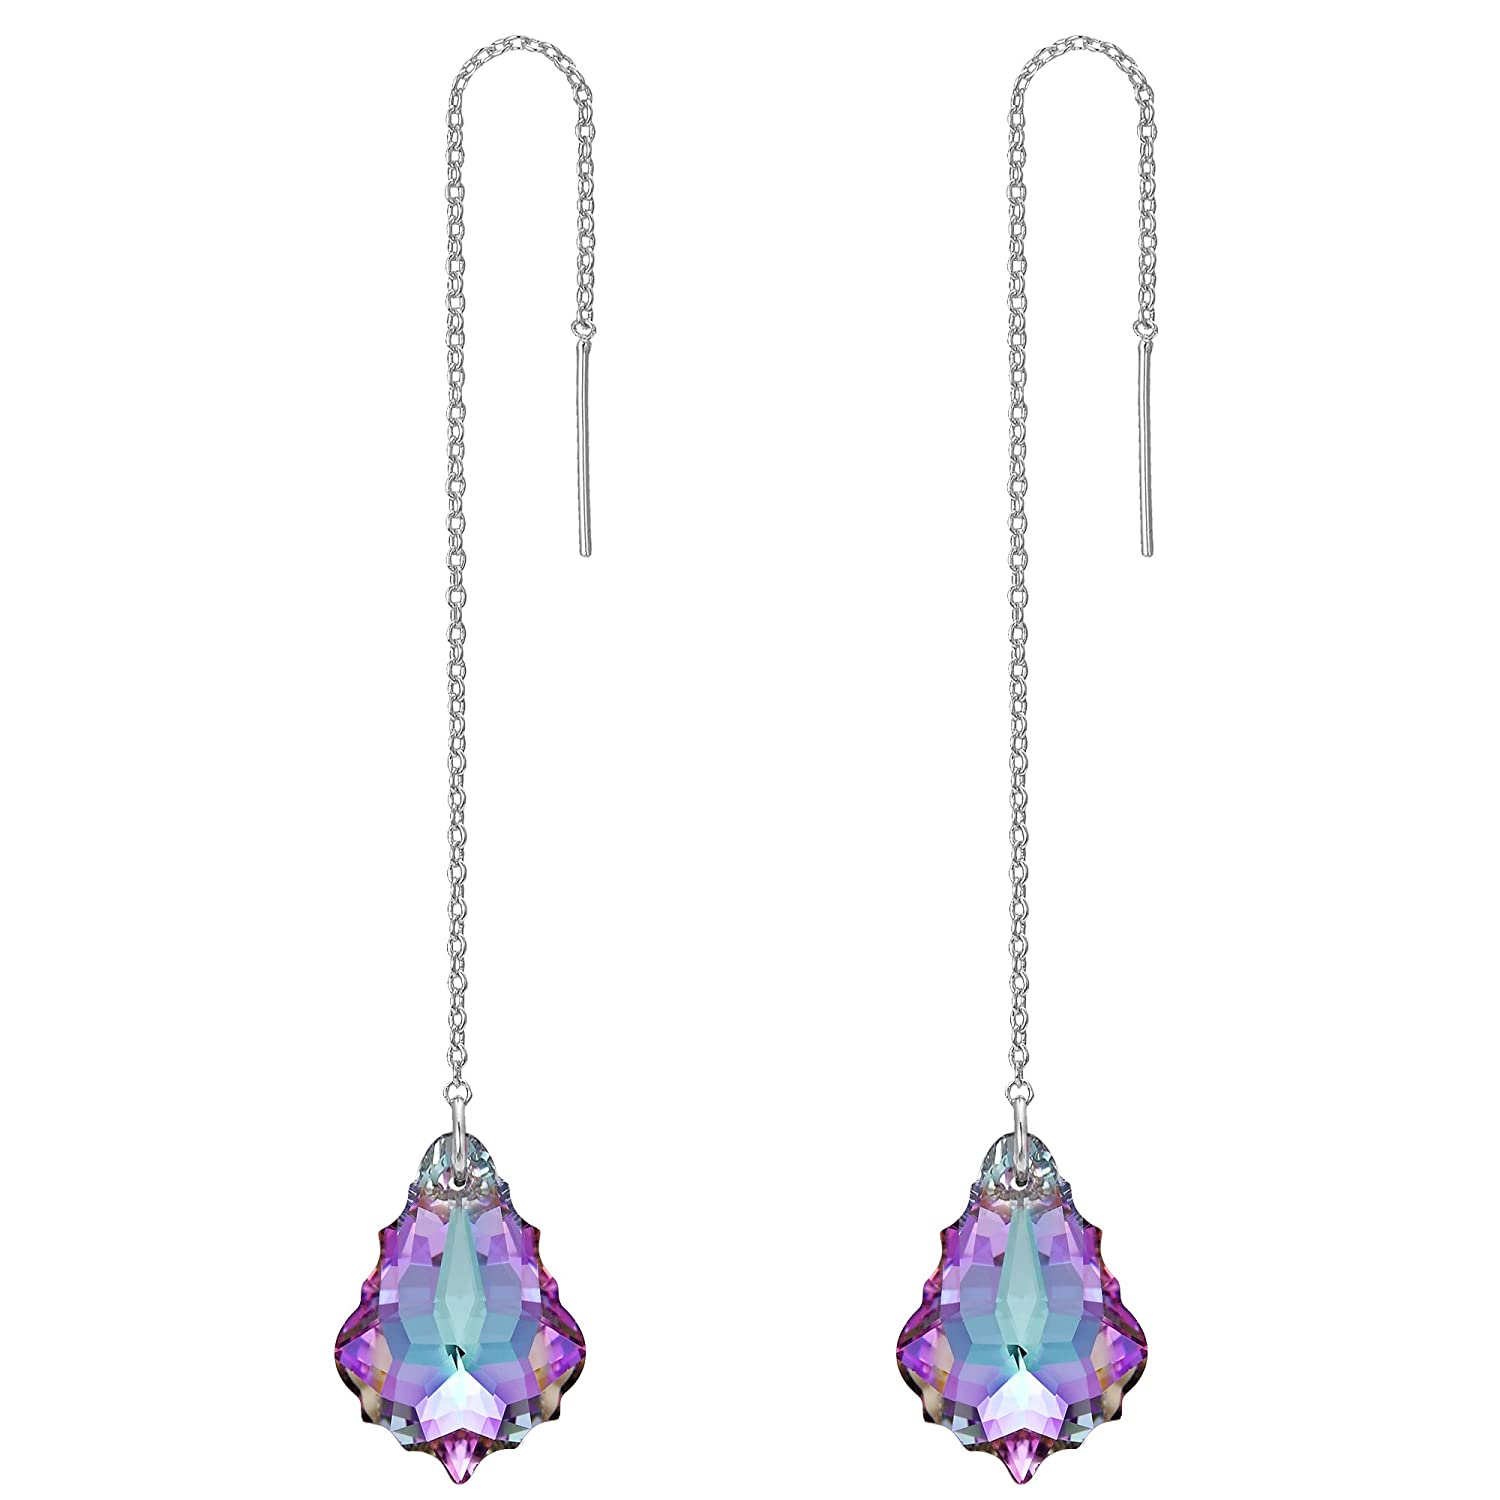 FANZE Women's Gold-Tone Long Baroque Drop Threader Slide Earrings Made with Swarovski Crystal